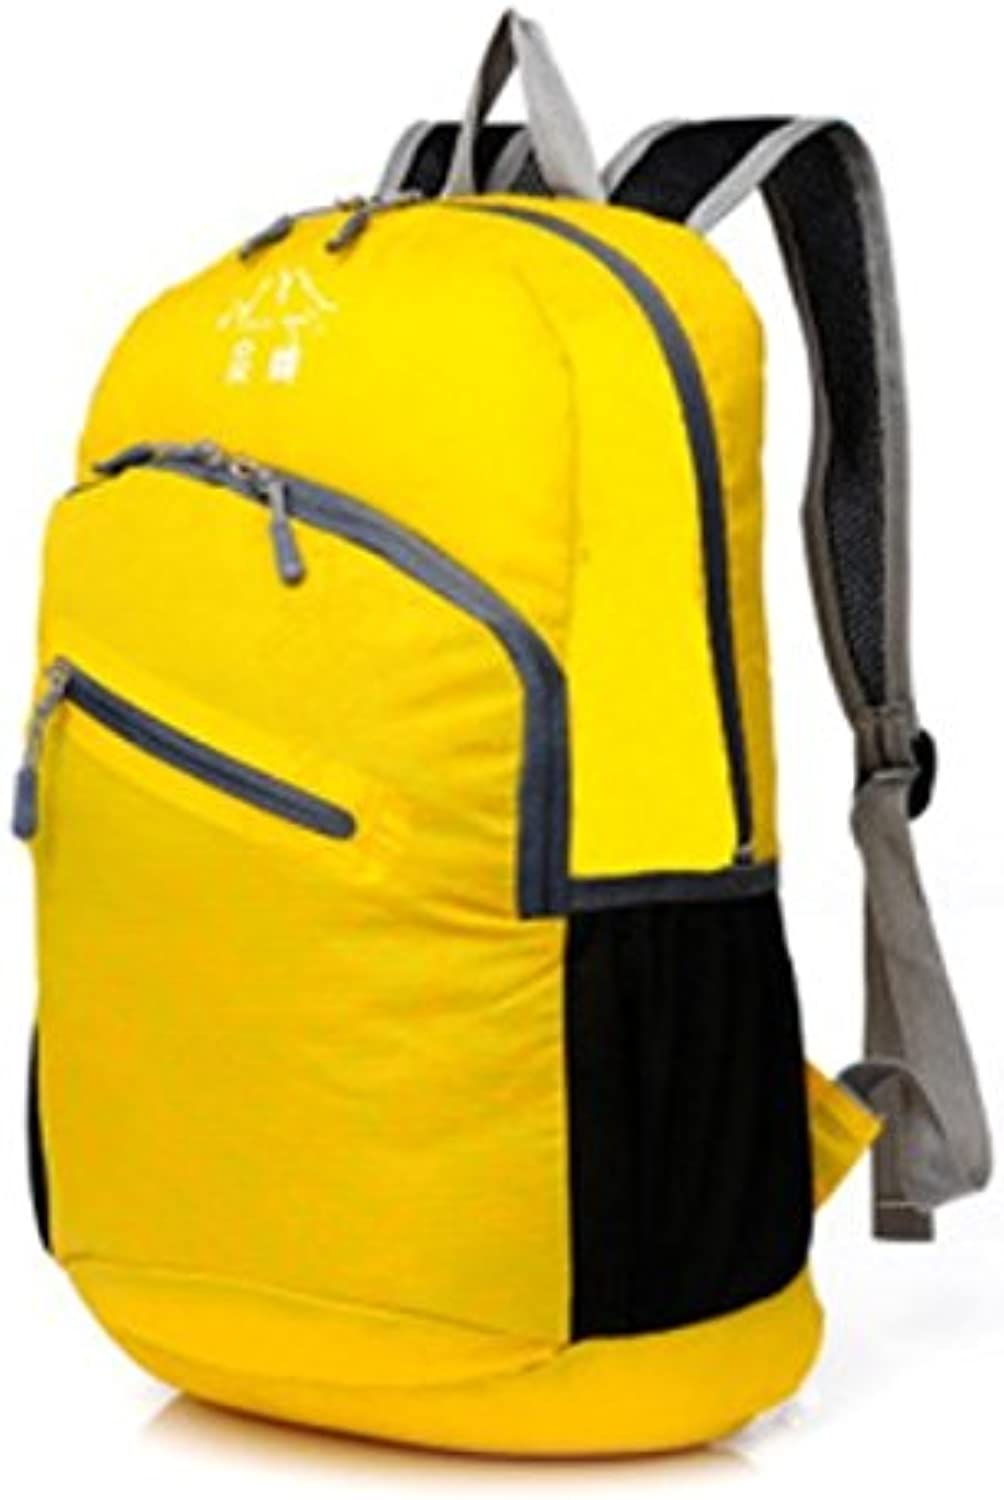 LCJ Folding camping trip lightweight package travel backpack shoulder bag , Yellow